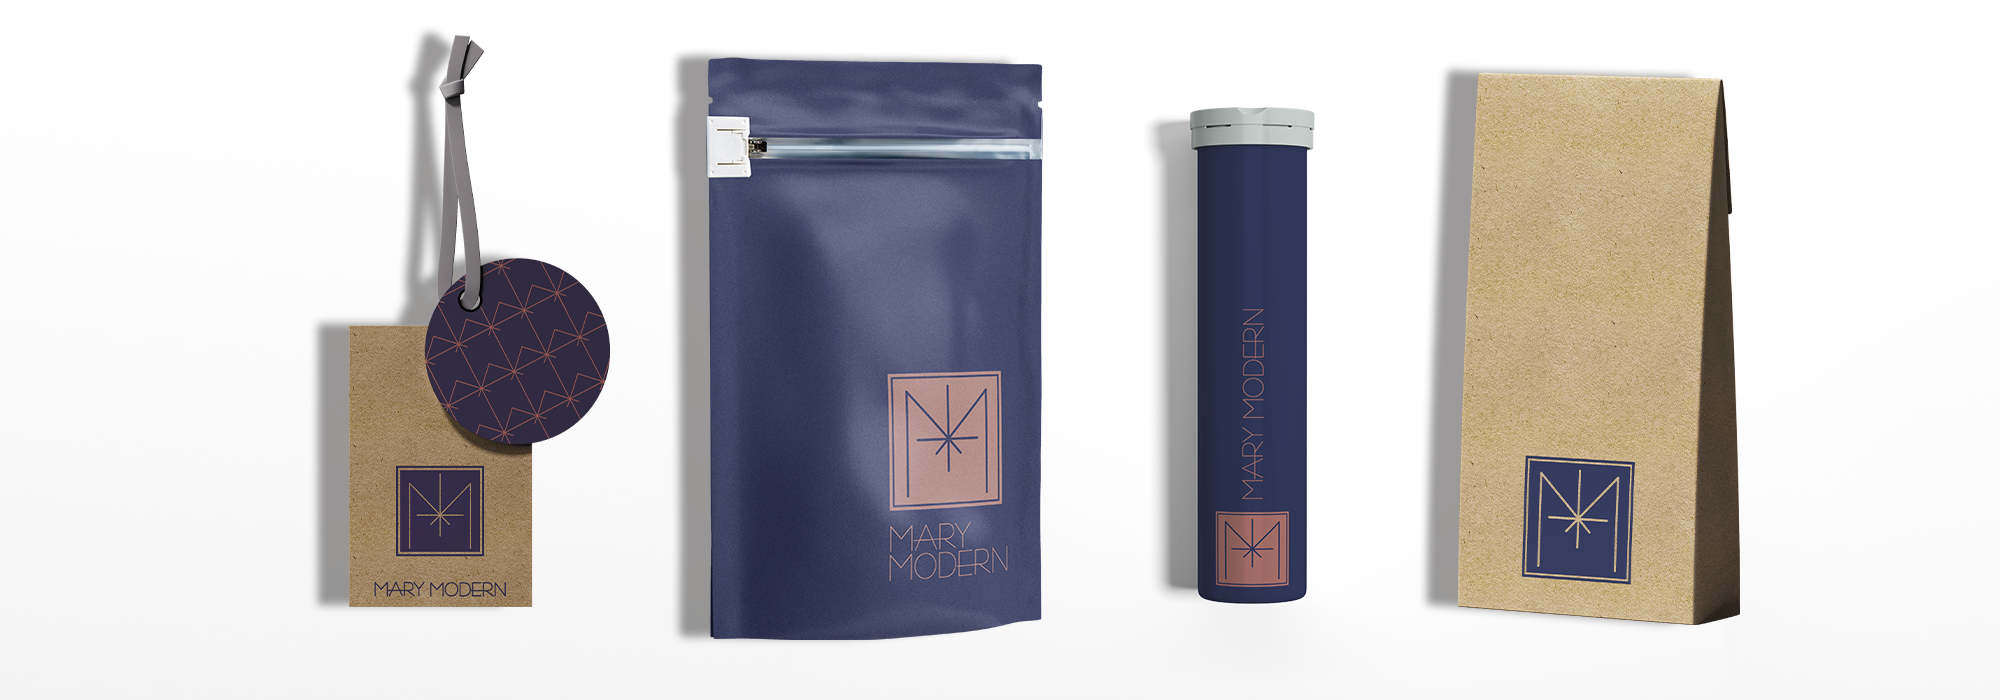 Mary Modern boutique cannabis dispensaries